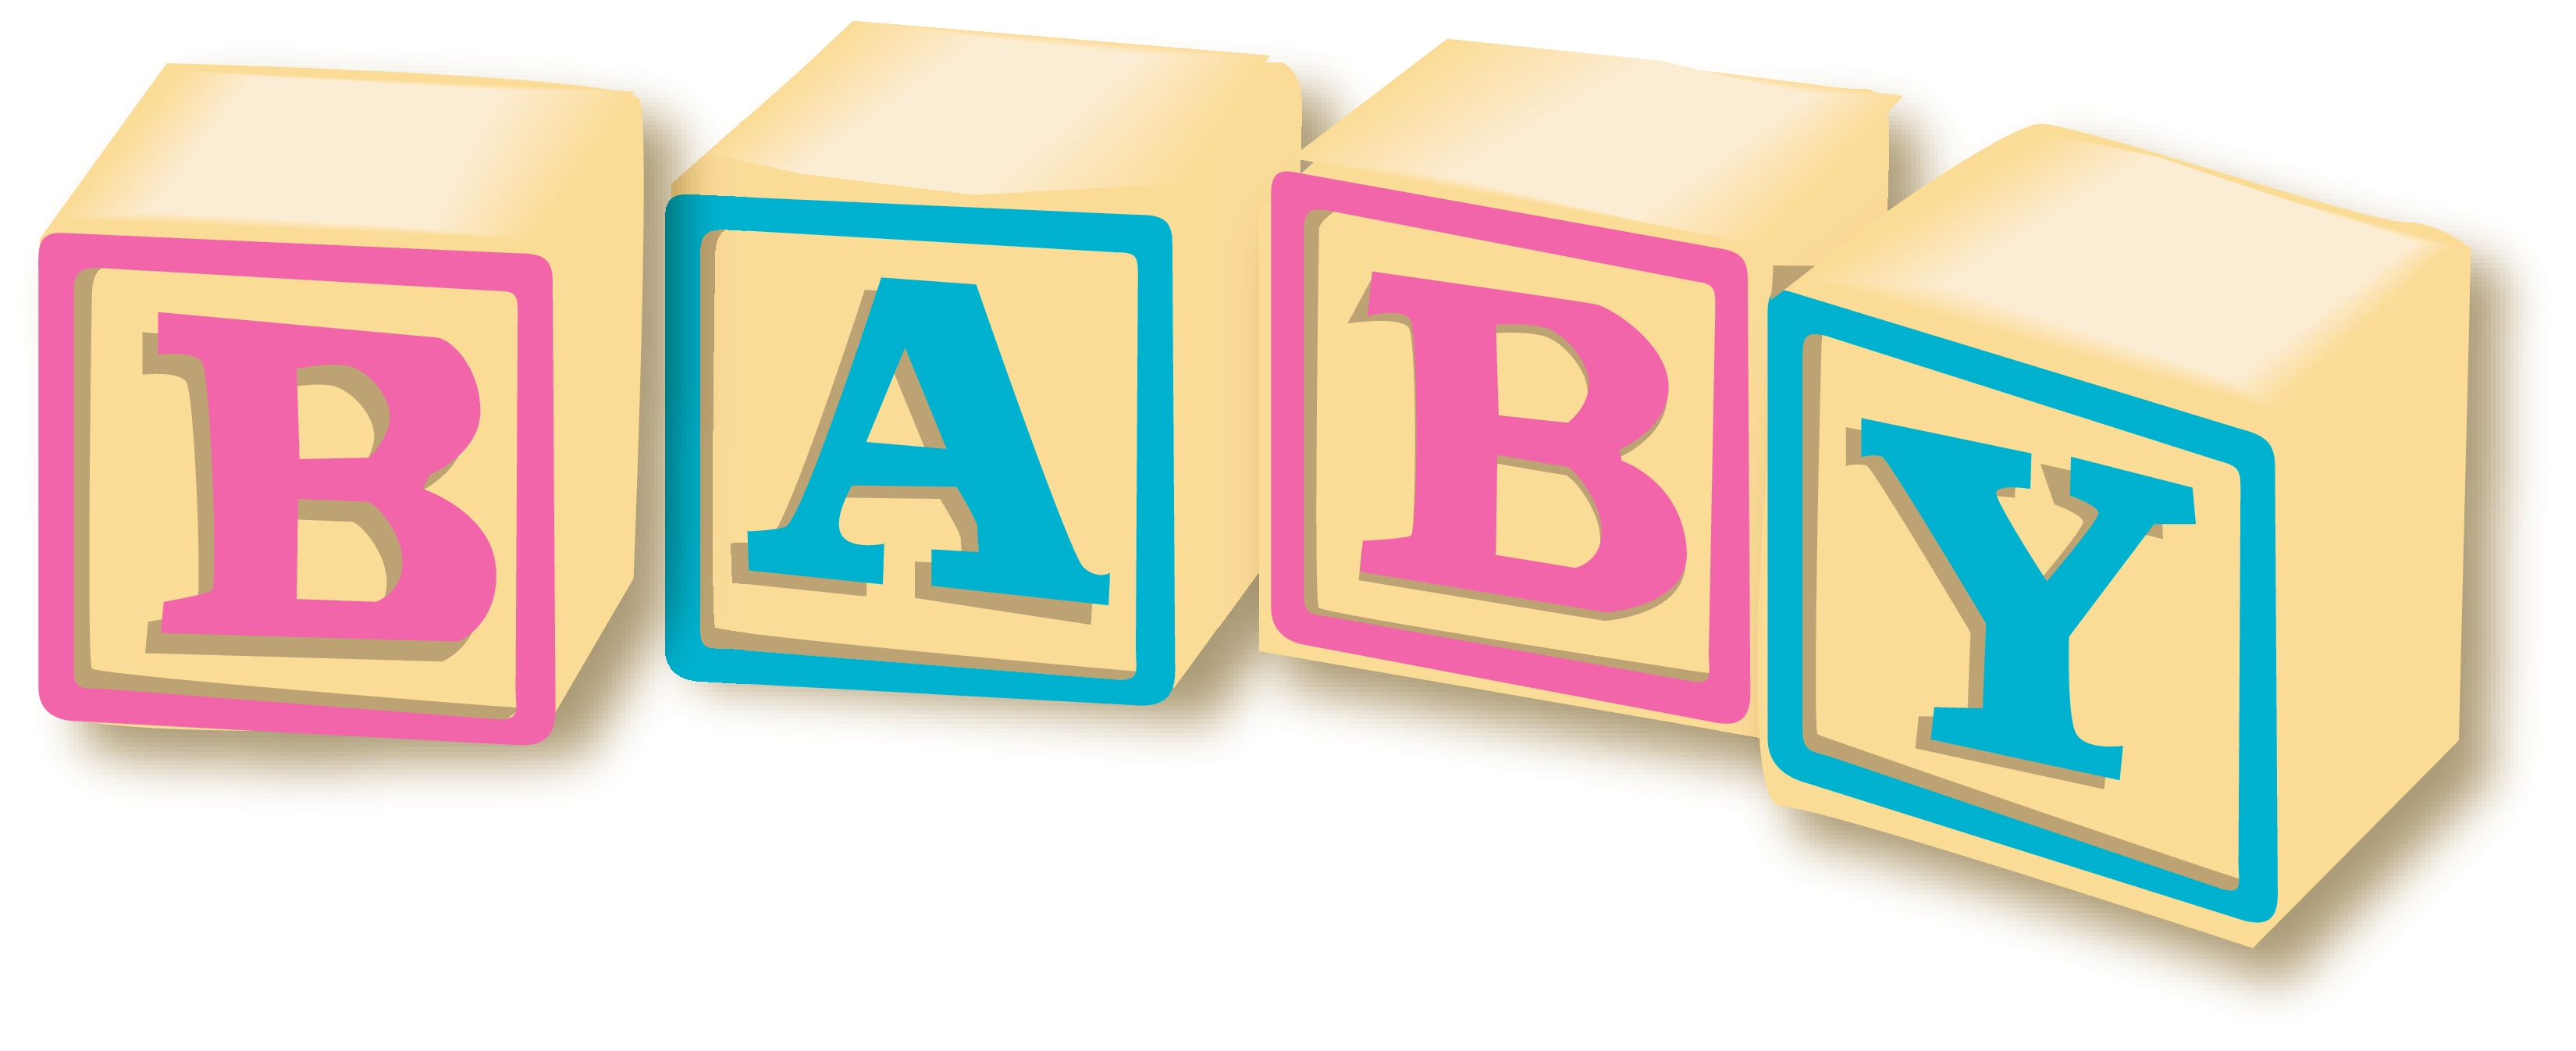 Baby building blocks clipart. Clip art images clipartall